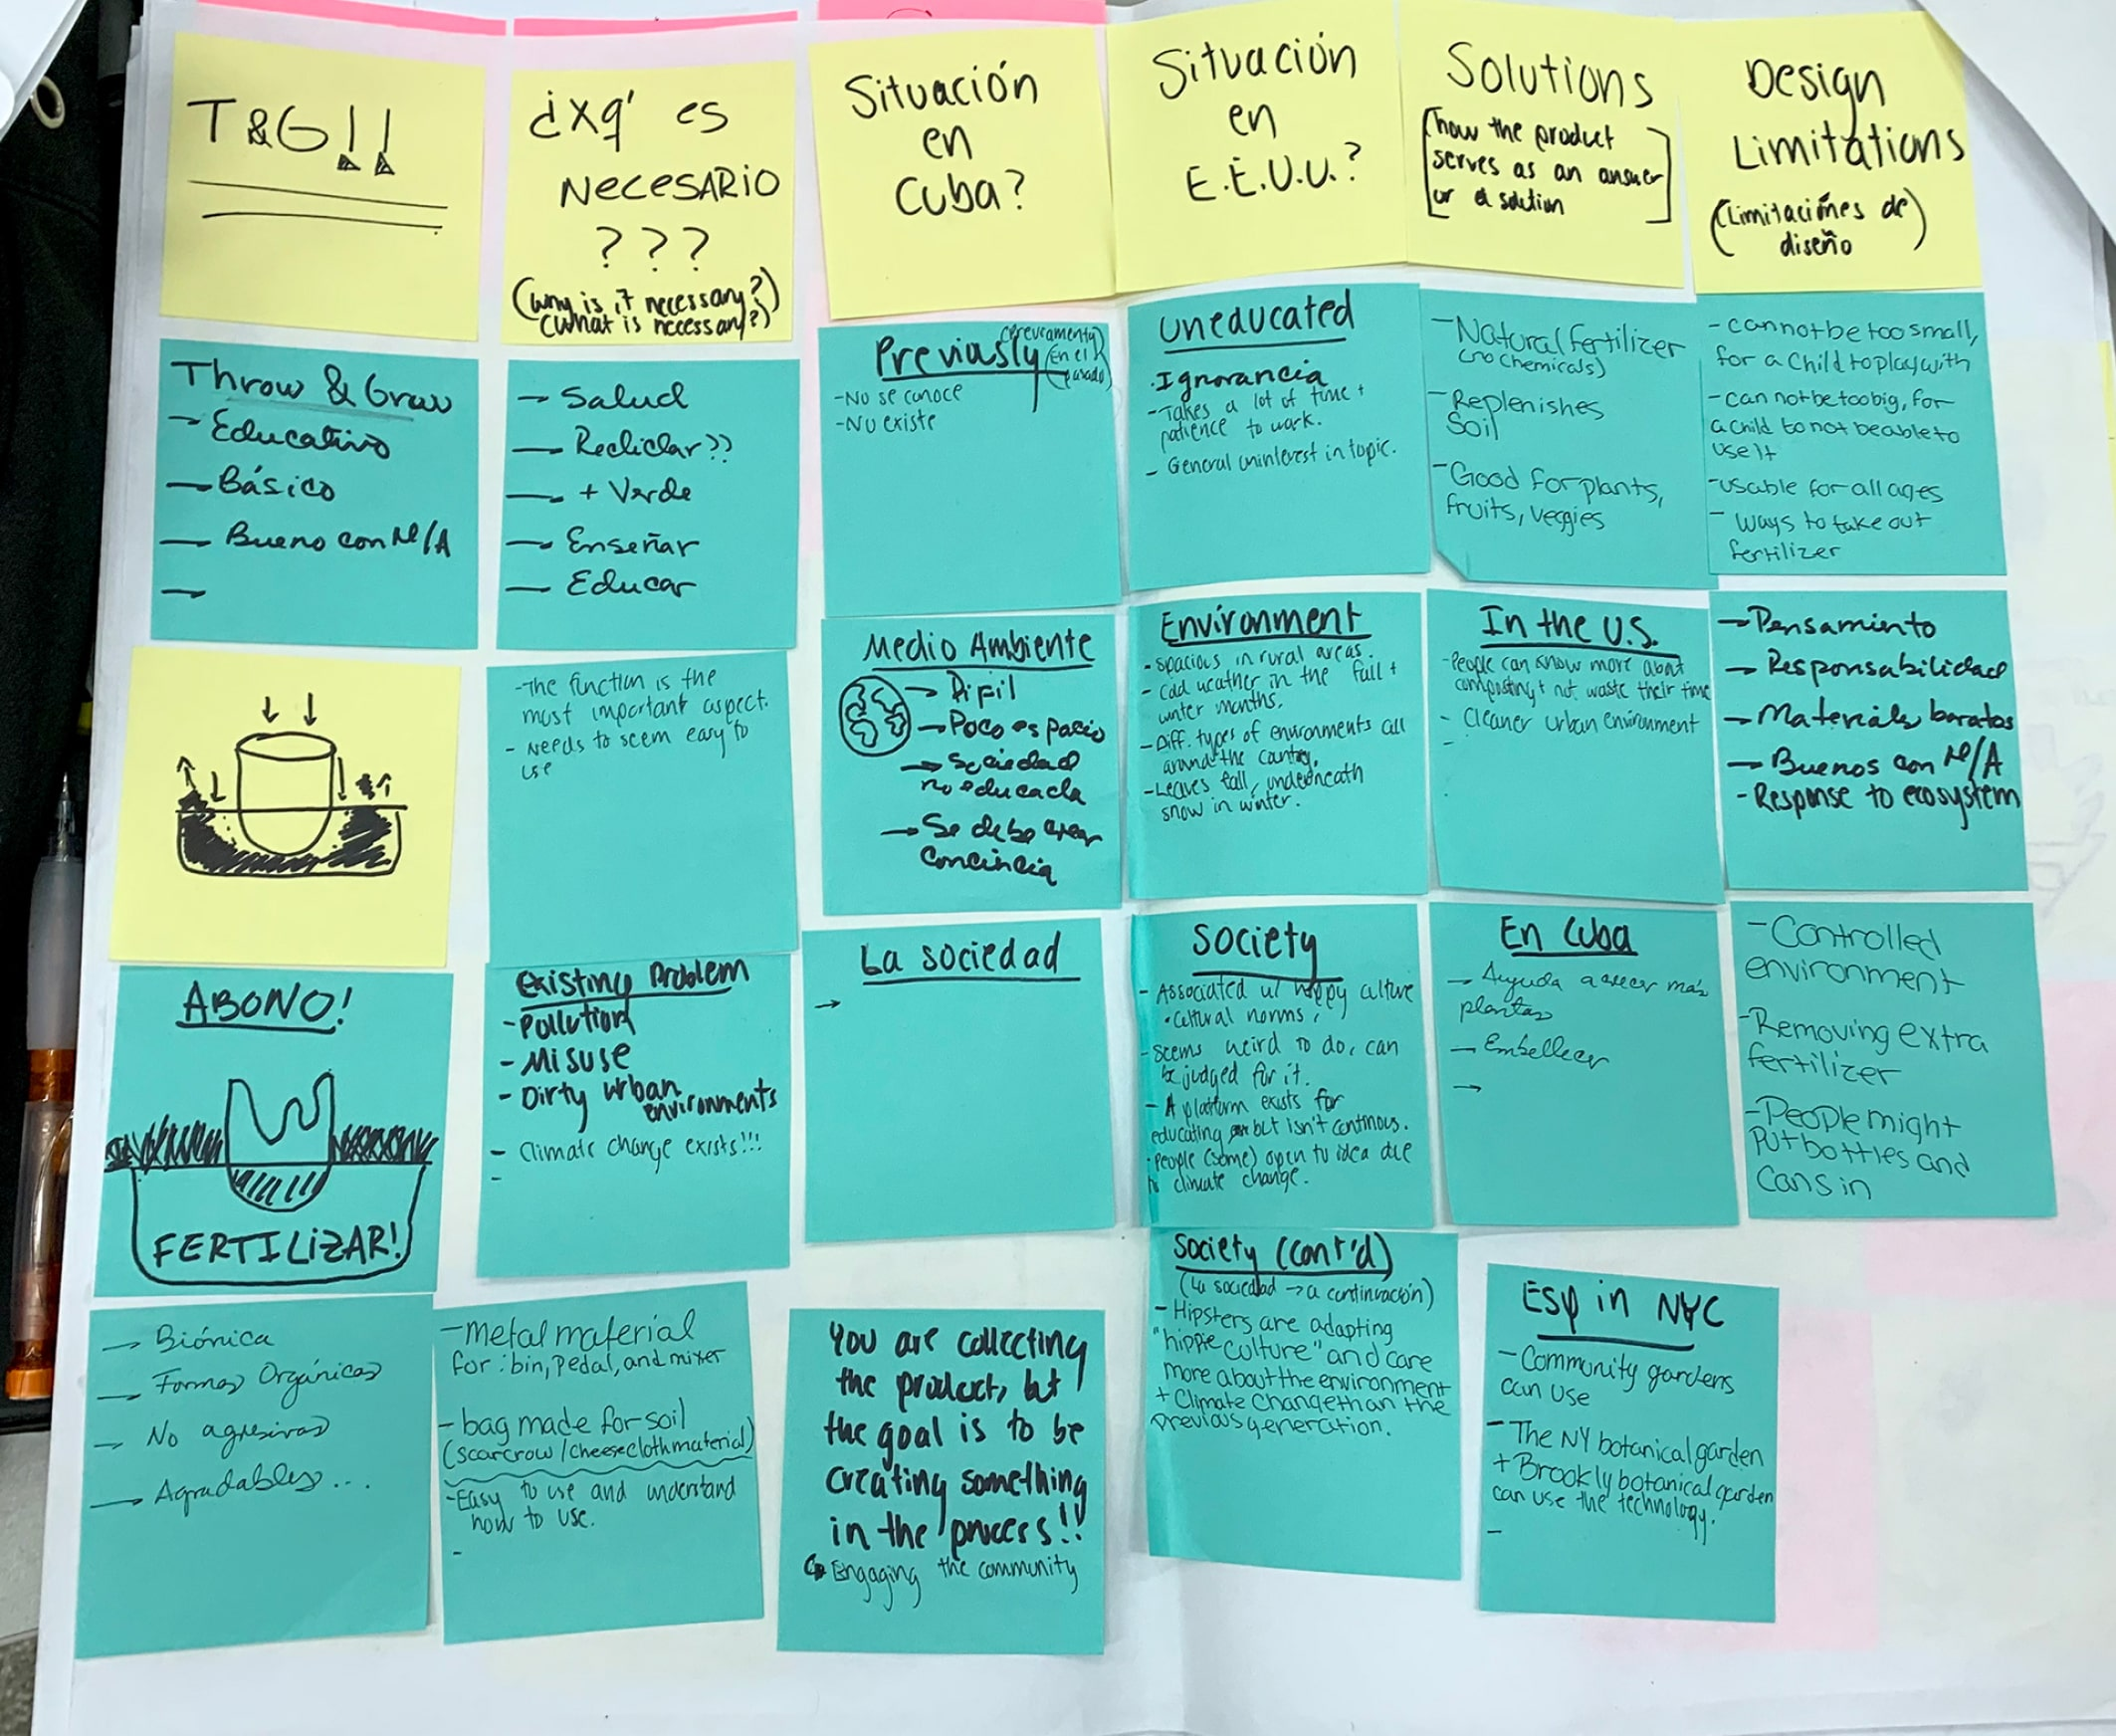 Post it's used to detail the indicated purpose and details that would be described in our initial presentation